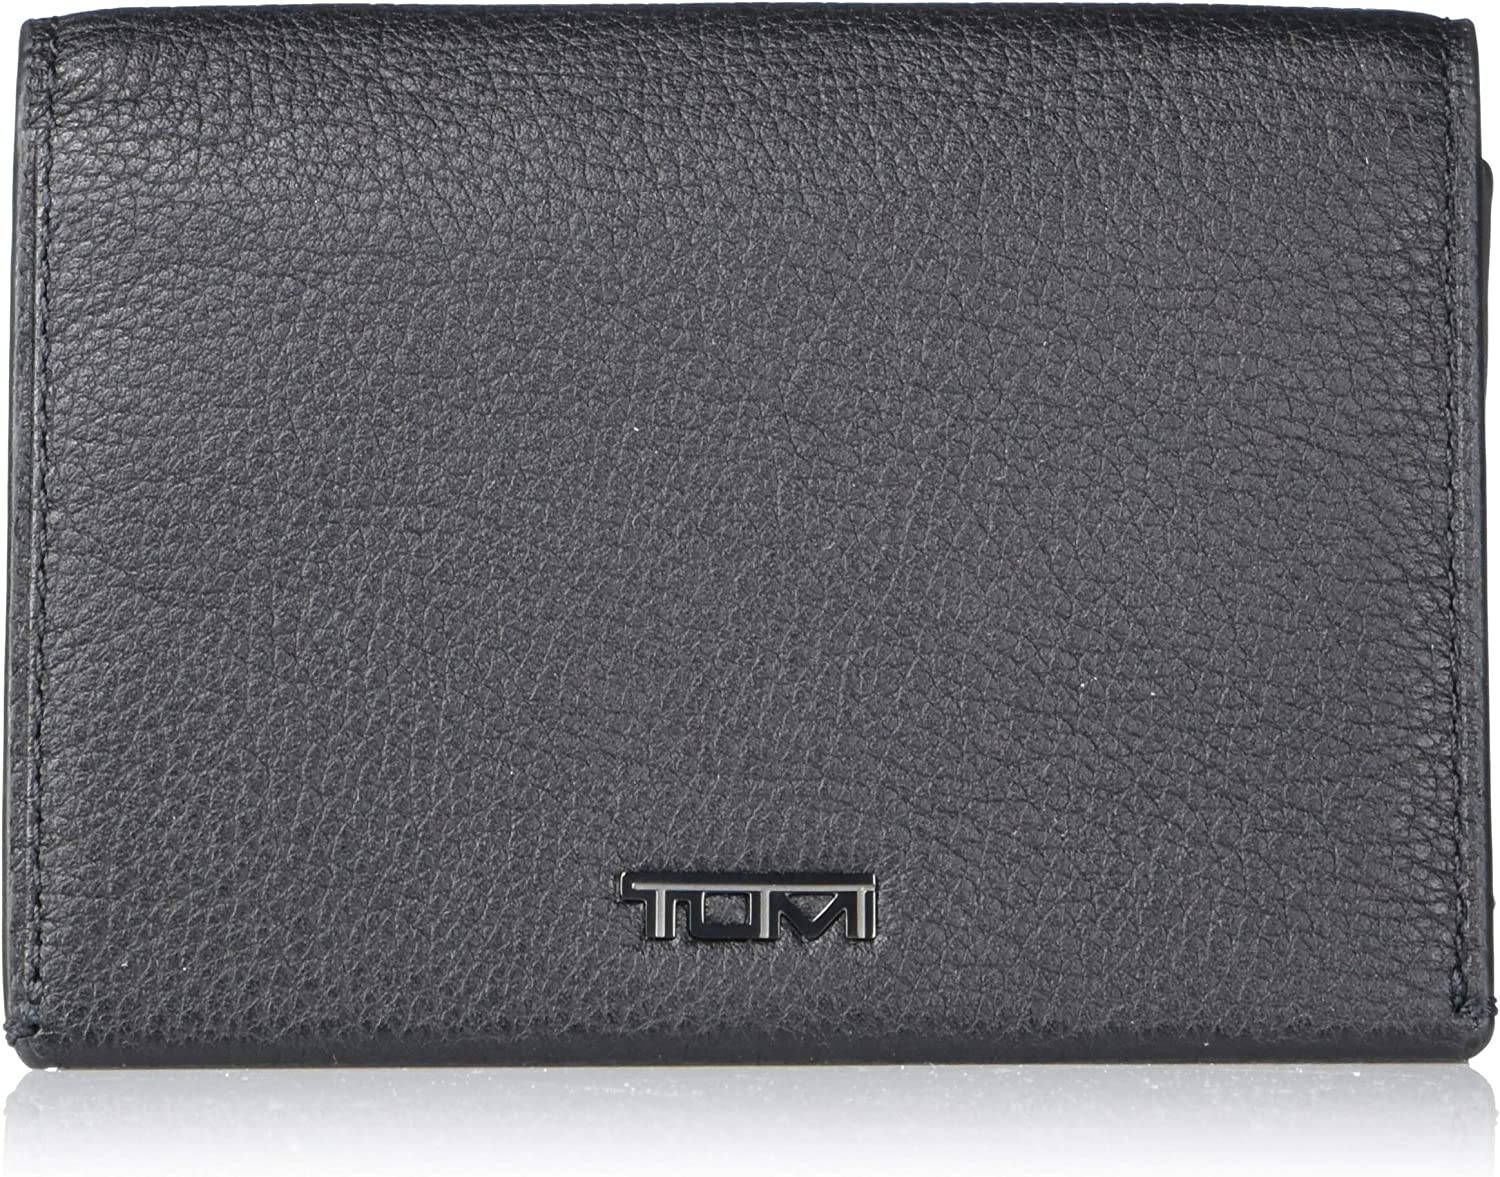 TUMI - Nassau Gusseted Card Case Wallet with RFID ID Lock for Me